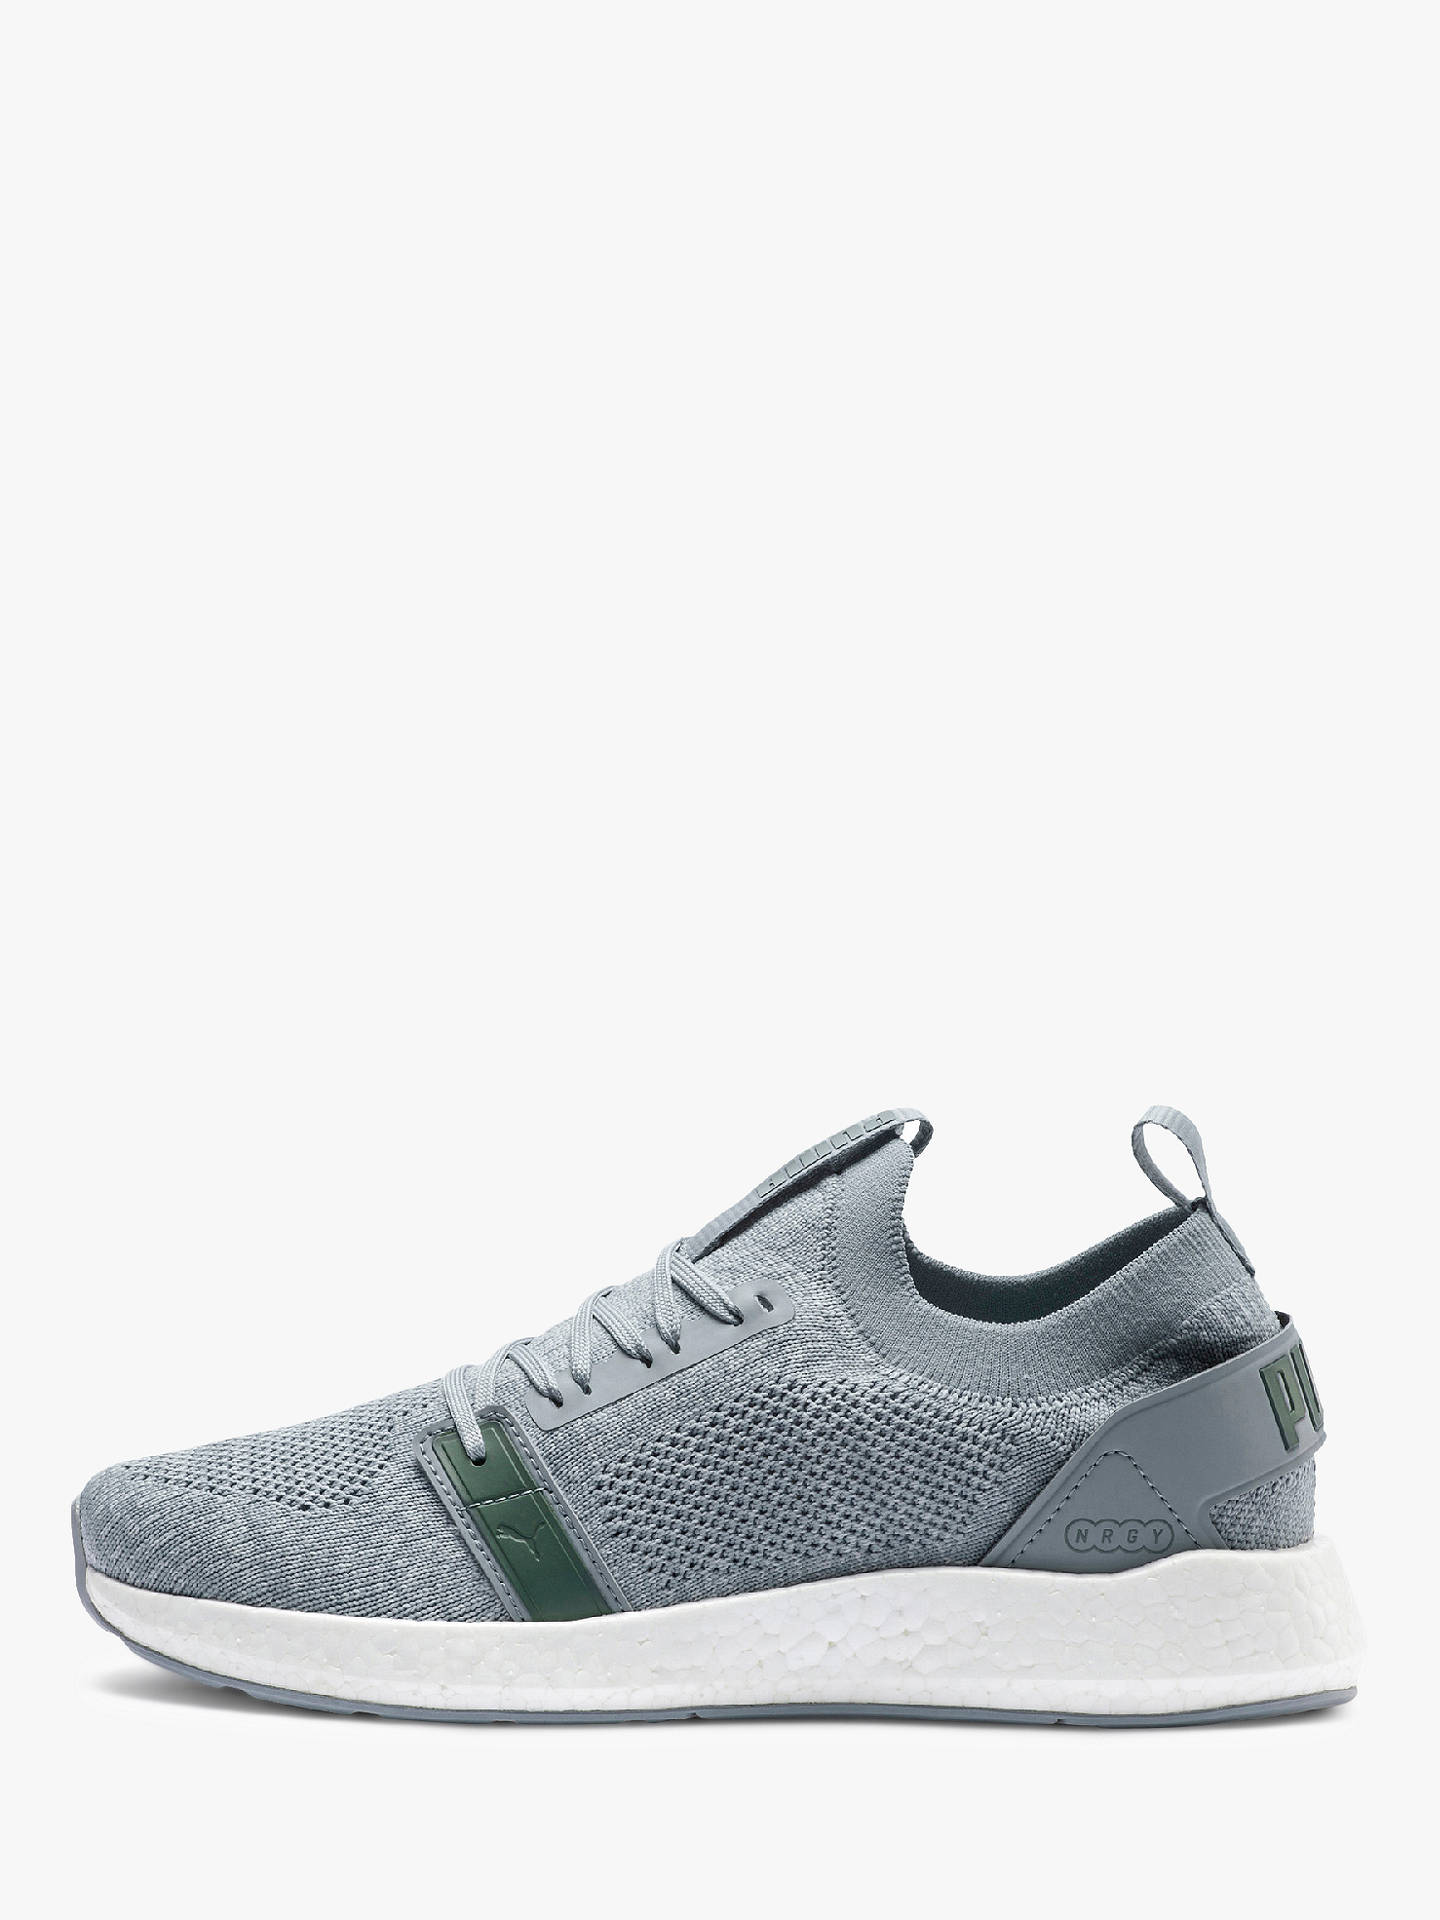 Buy PUMA NRGY Neko Engineer Knit Women's Running Shoes, Quarry/Puma White/Laurel Wreath, 6 Online at johnlewis.com